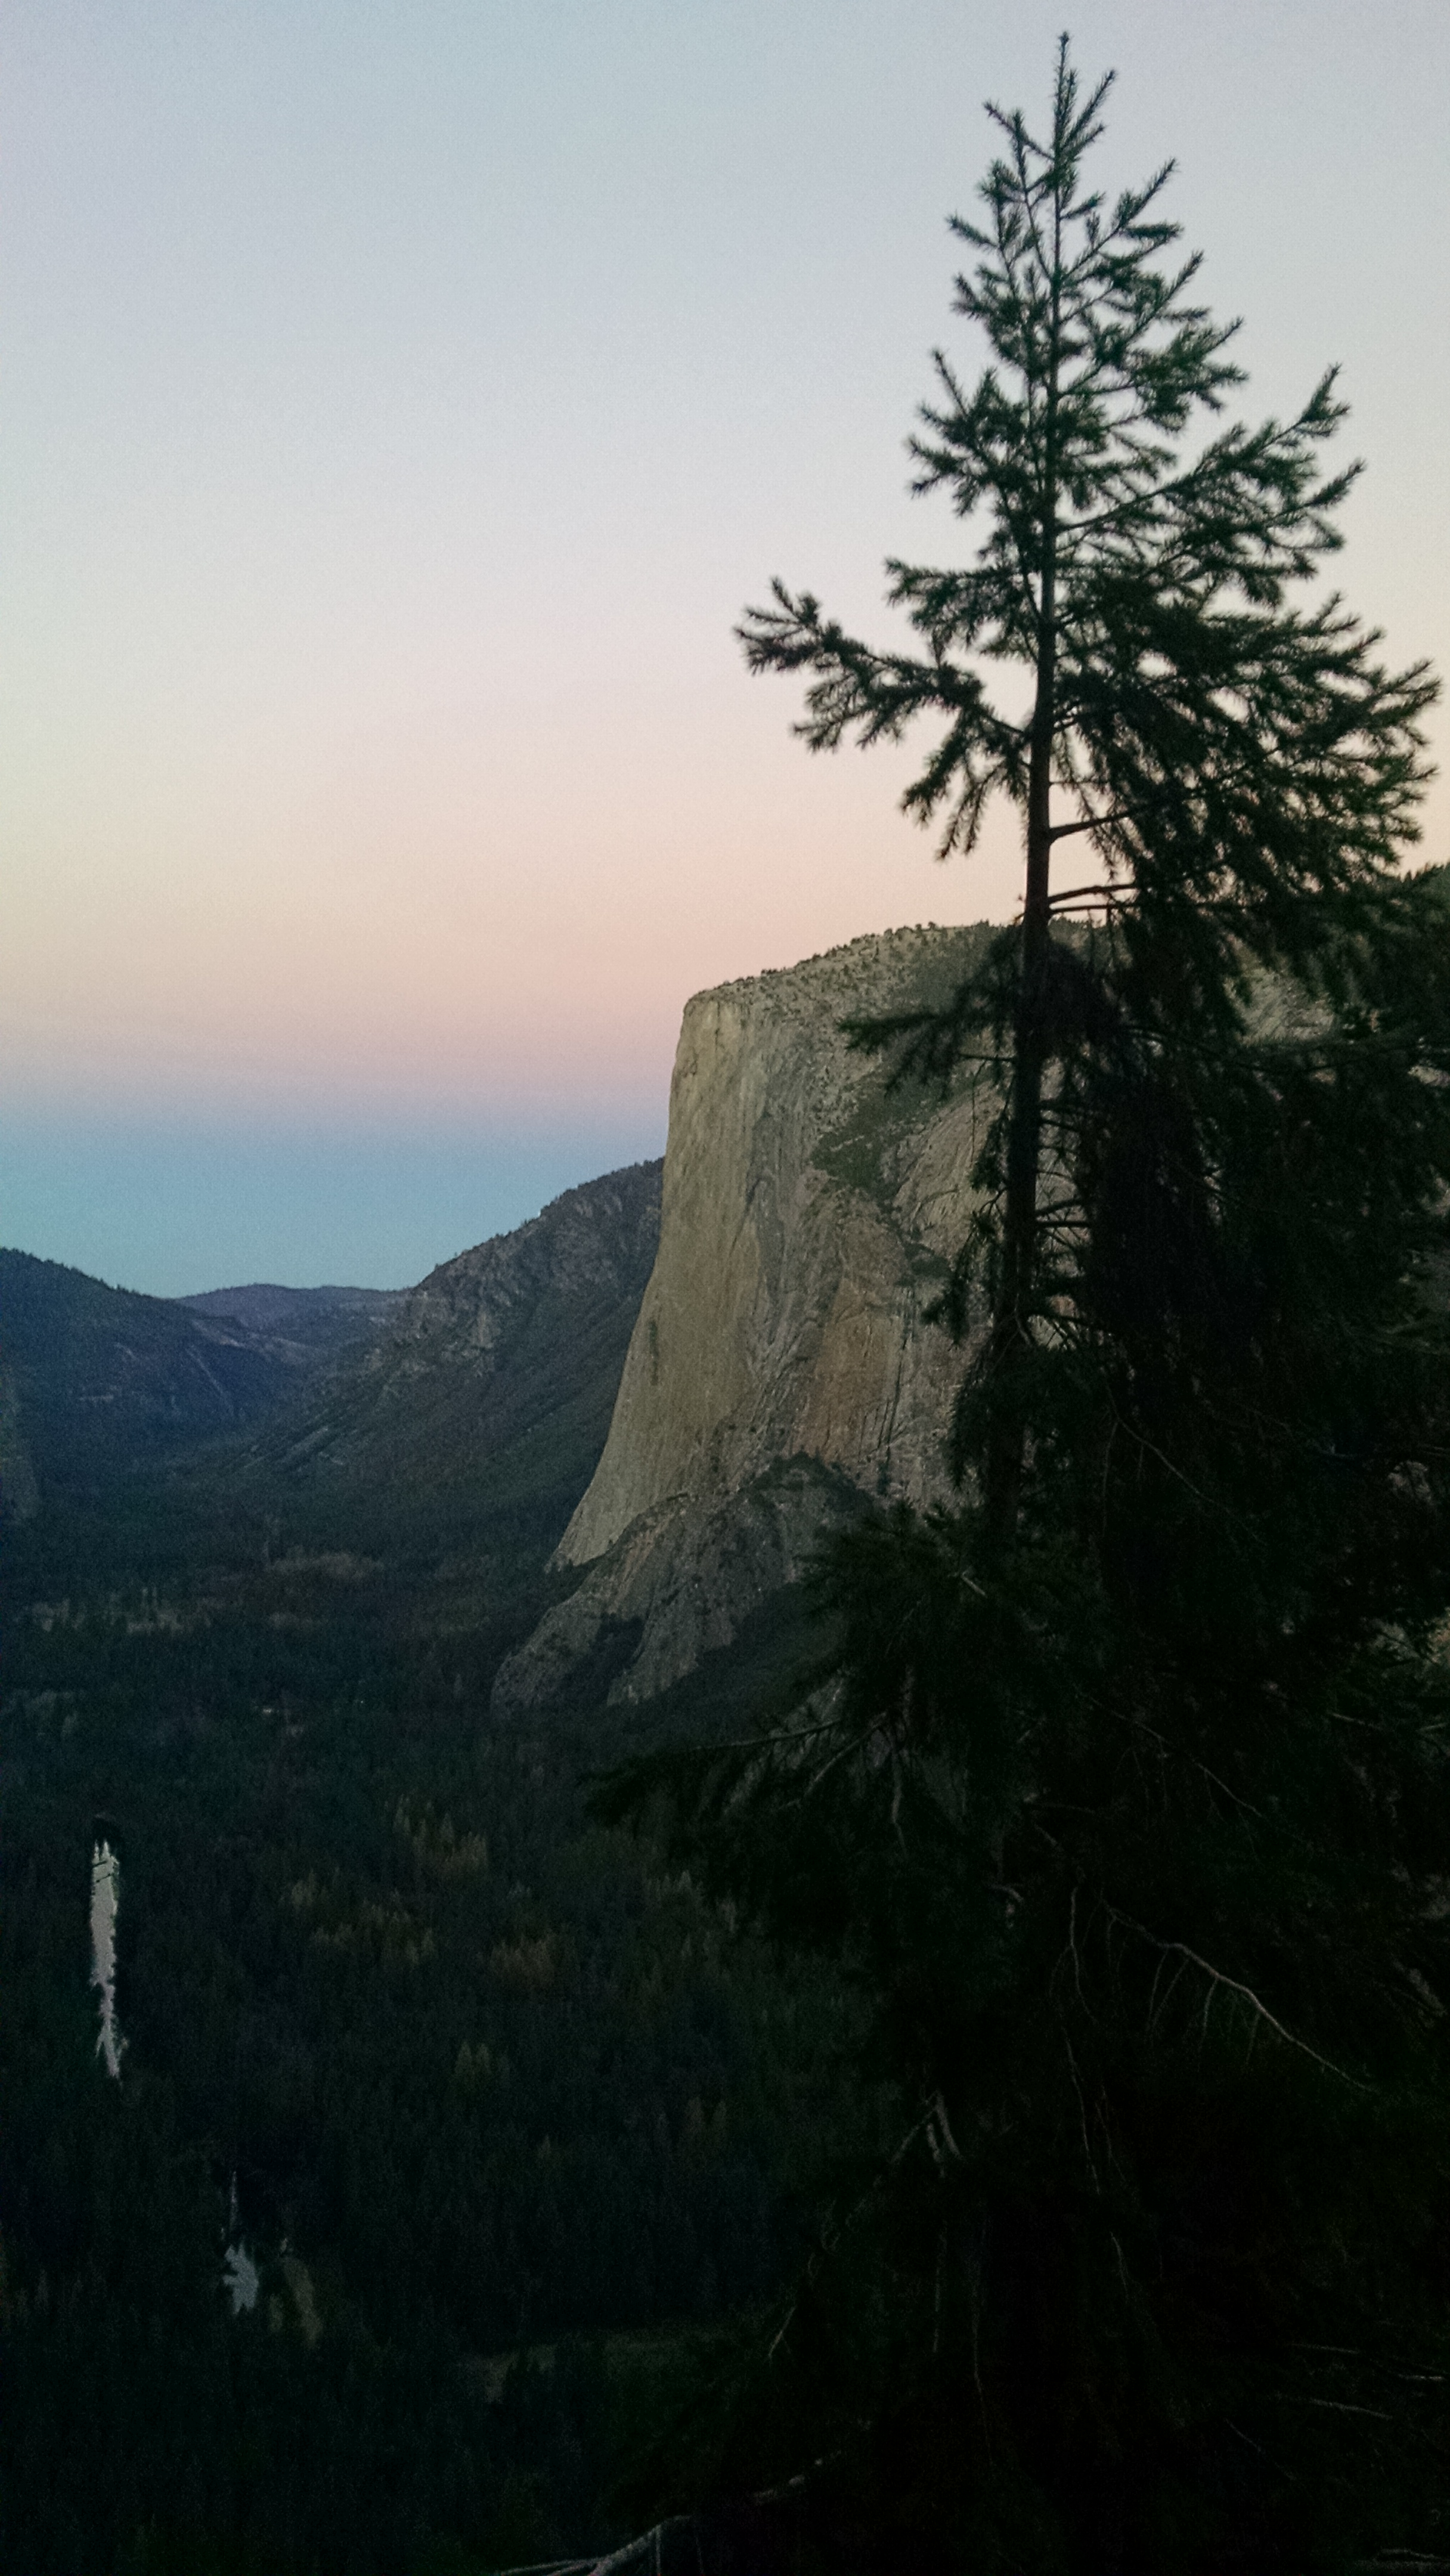 A view of the sunrise on El Capitan in Yosemite National Park